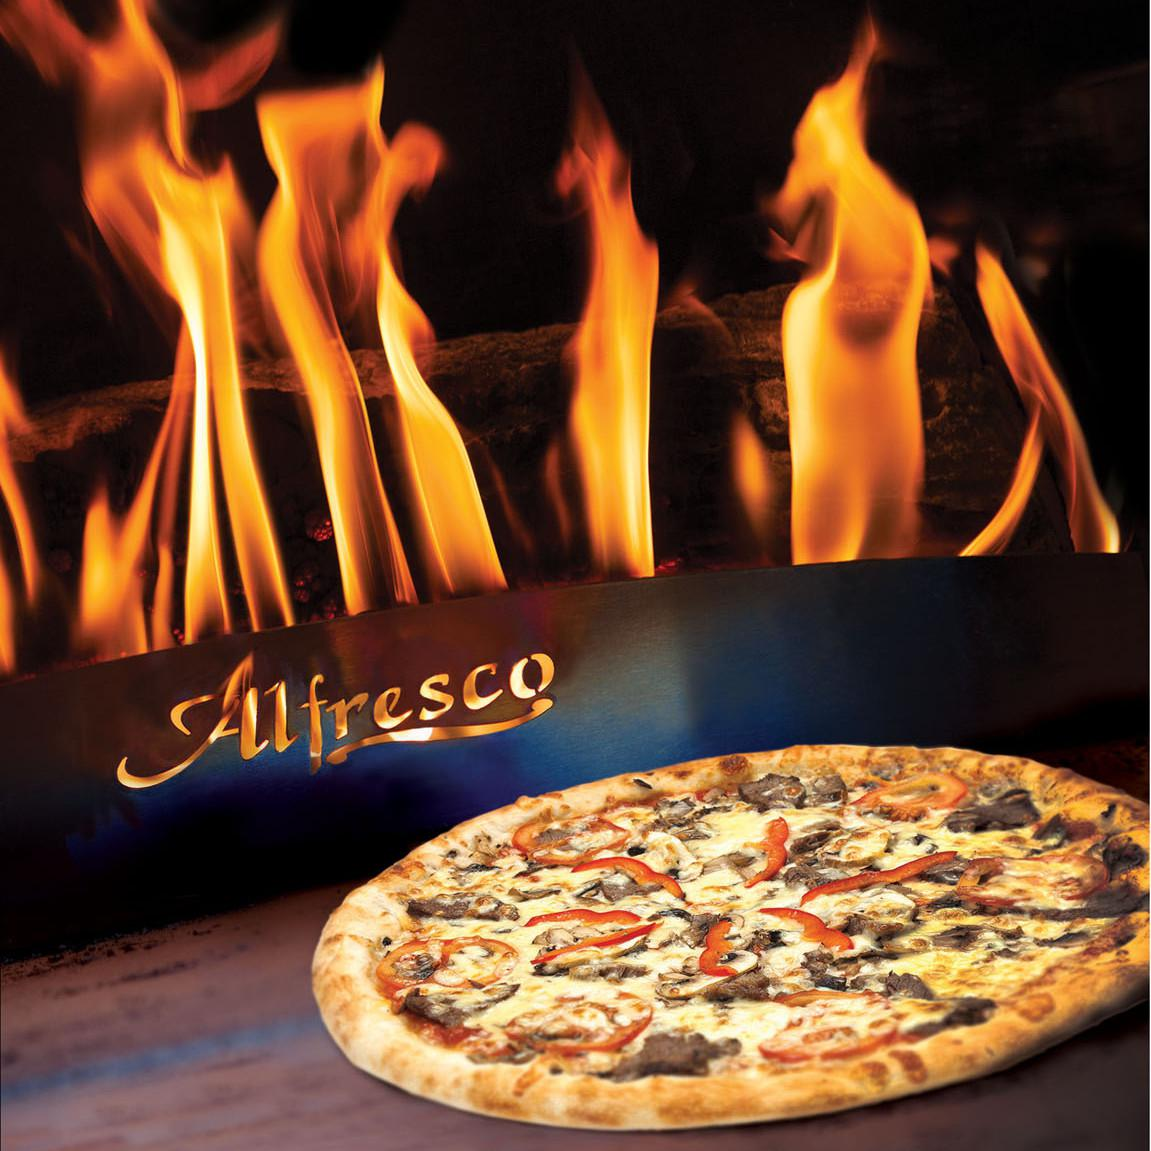 Alfresco 30-Inch Built-In Natural Gas Outdoor Pizza Oven - Lifestyle